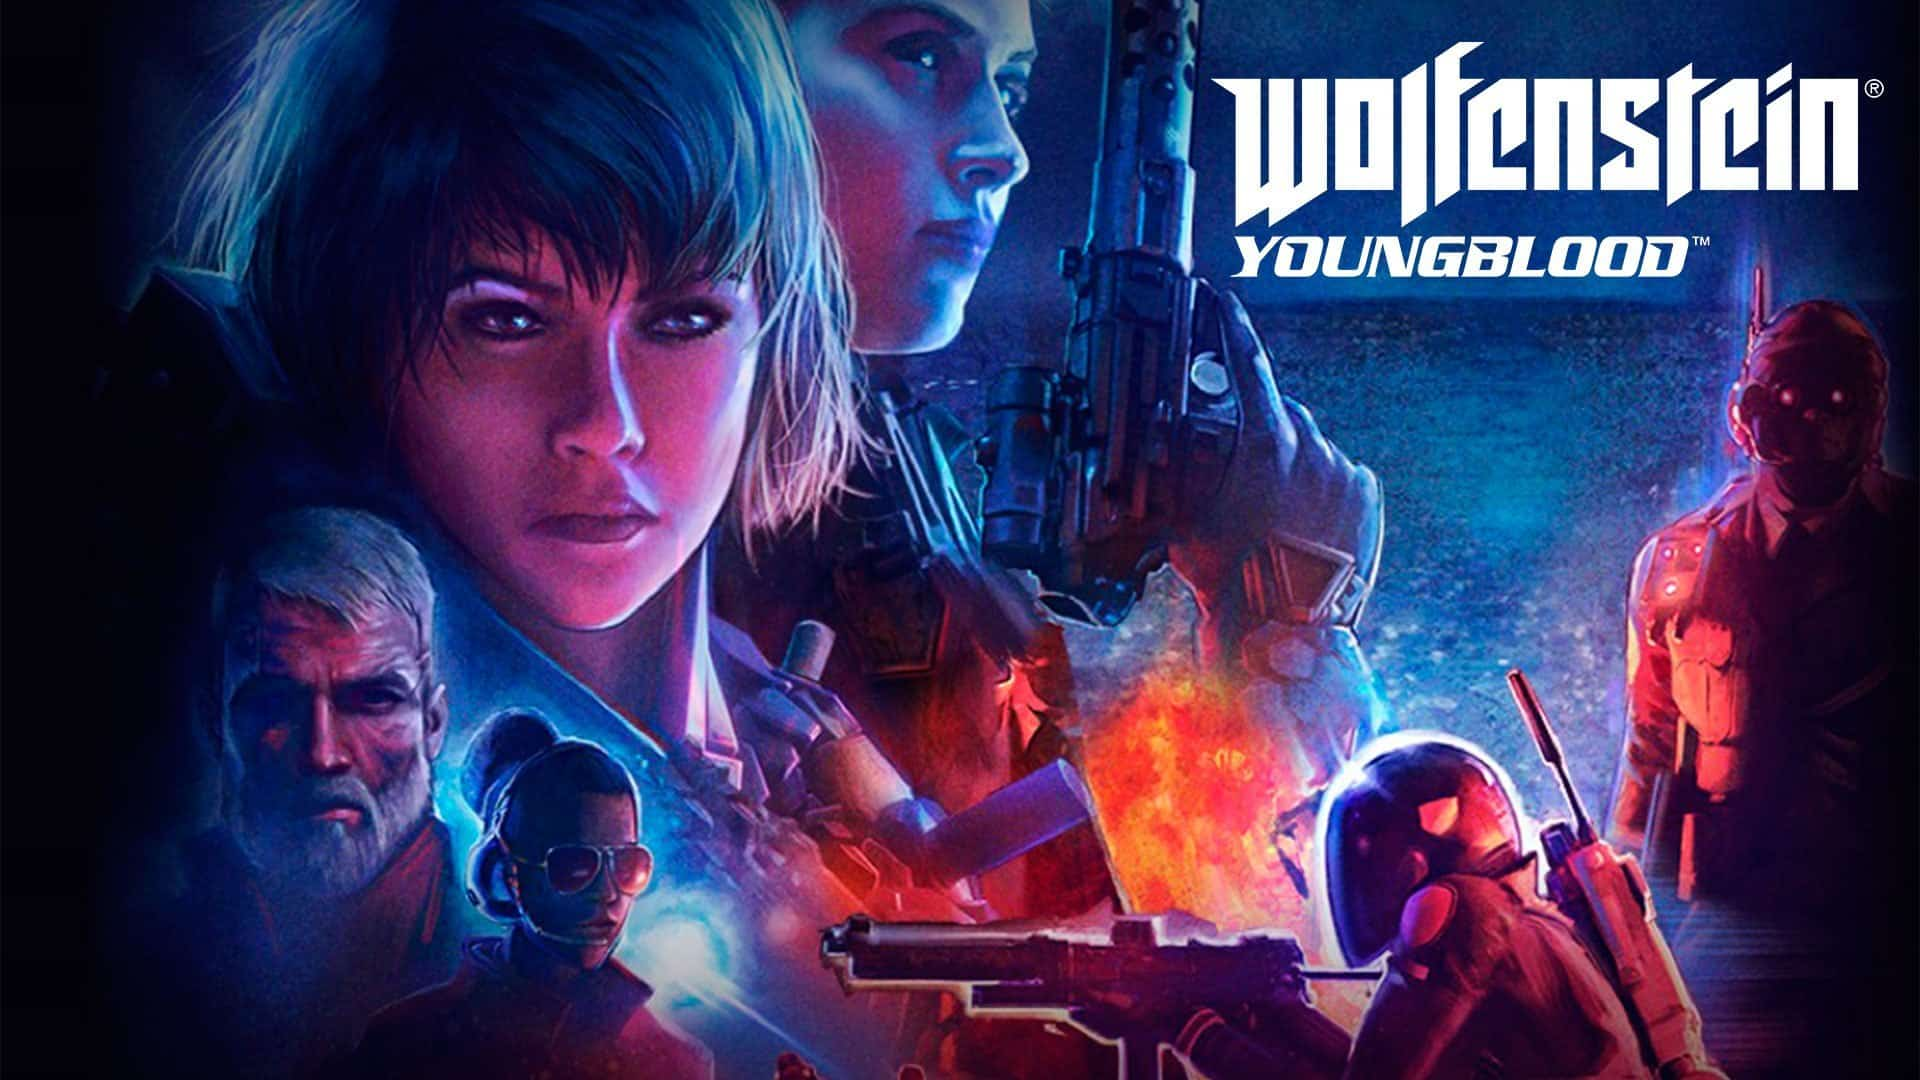 Wolfenstein: Youngblood Update 1.0.7 Released